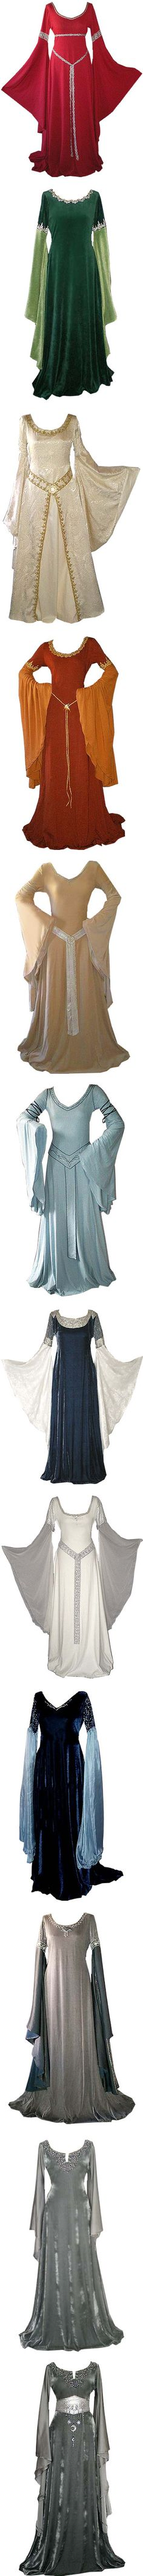 """""""Medieval Gowns I"""" by savagedamsel ❤ liked on Polyvore."""